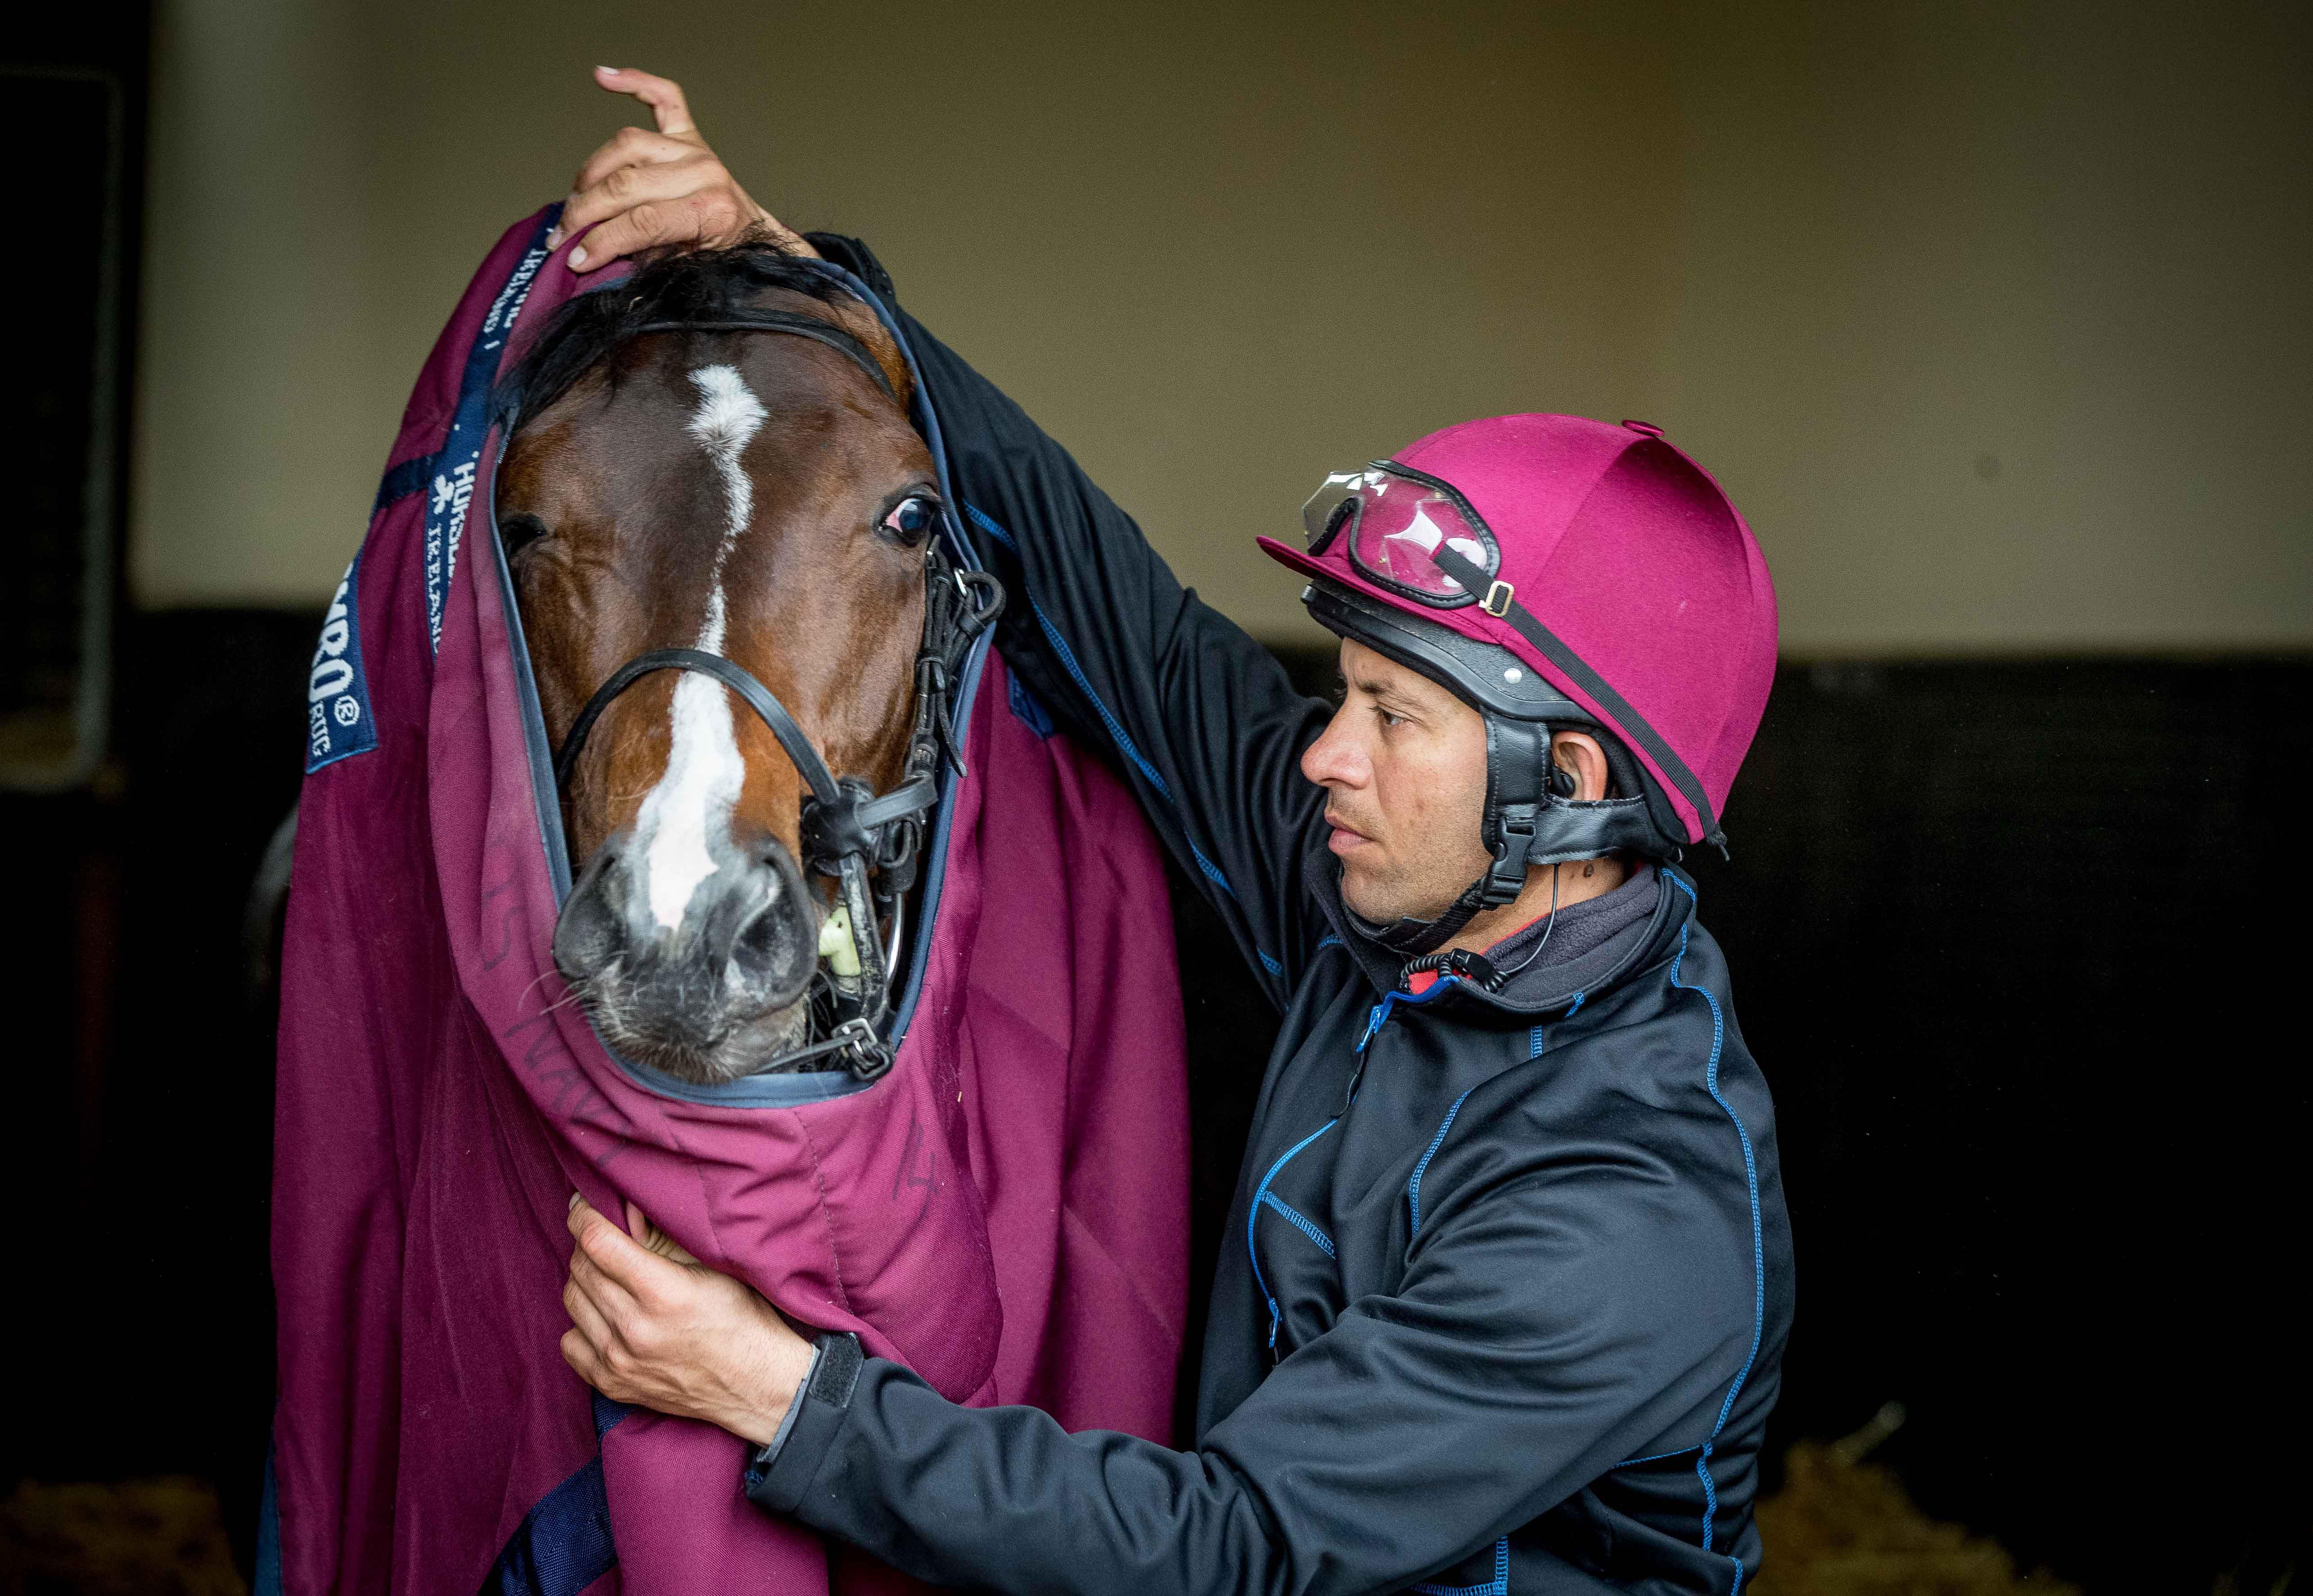 Ballydoyle - groom kurram sheikh putting the sheet on us navy flag - racingfotos